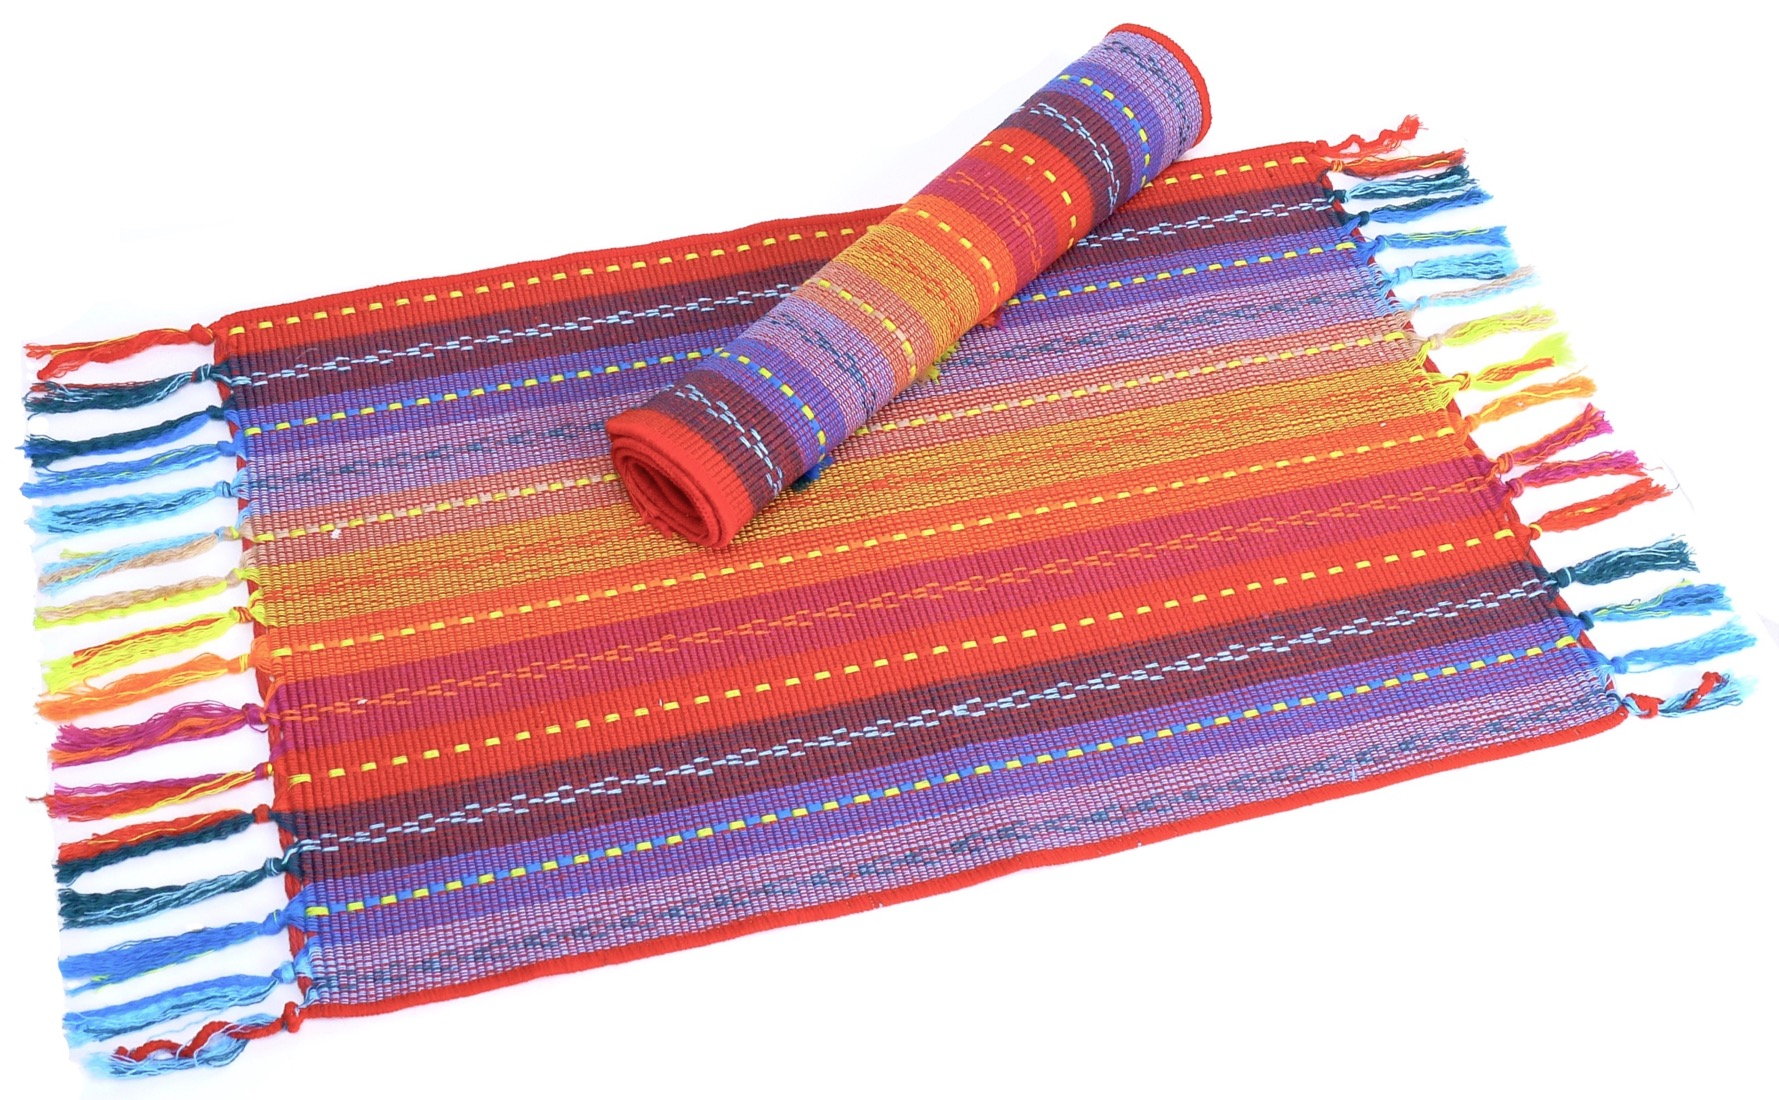 Image of Spiceberry Fiesta Cotton Placemats Red, Blue, Yellow Weave - Set of 4